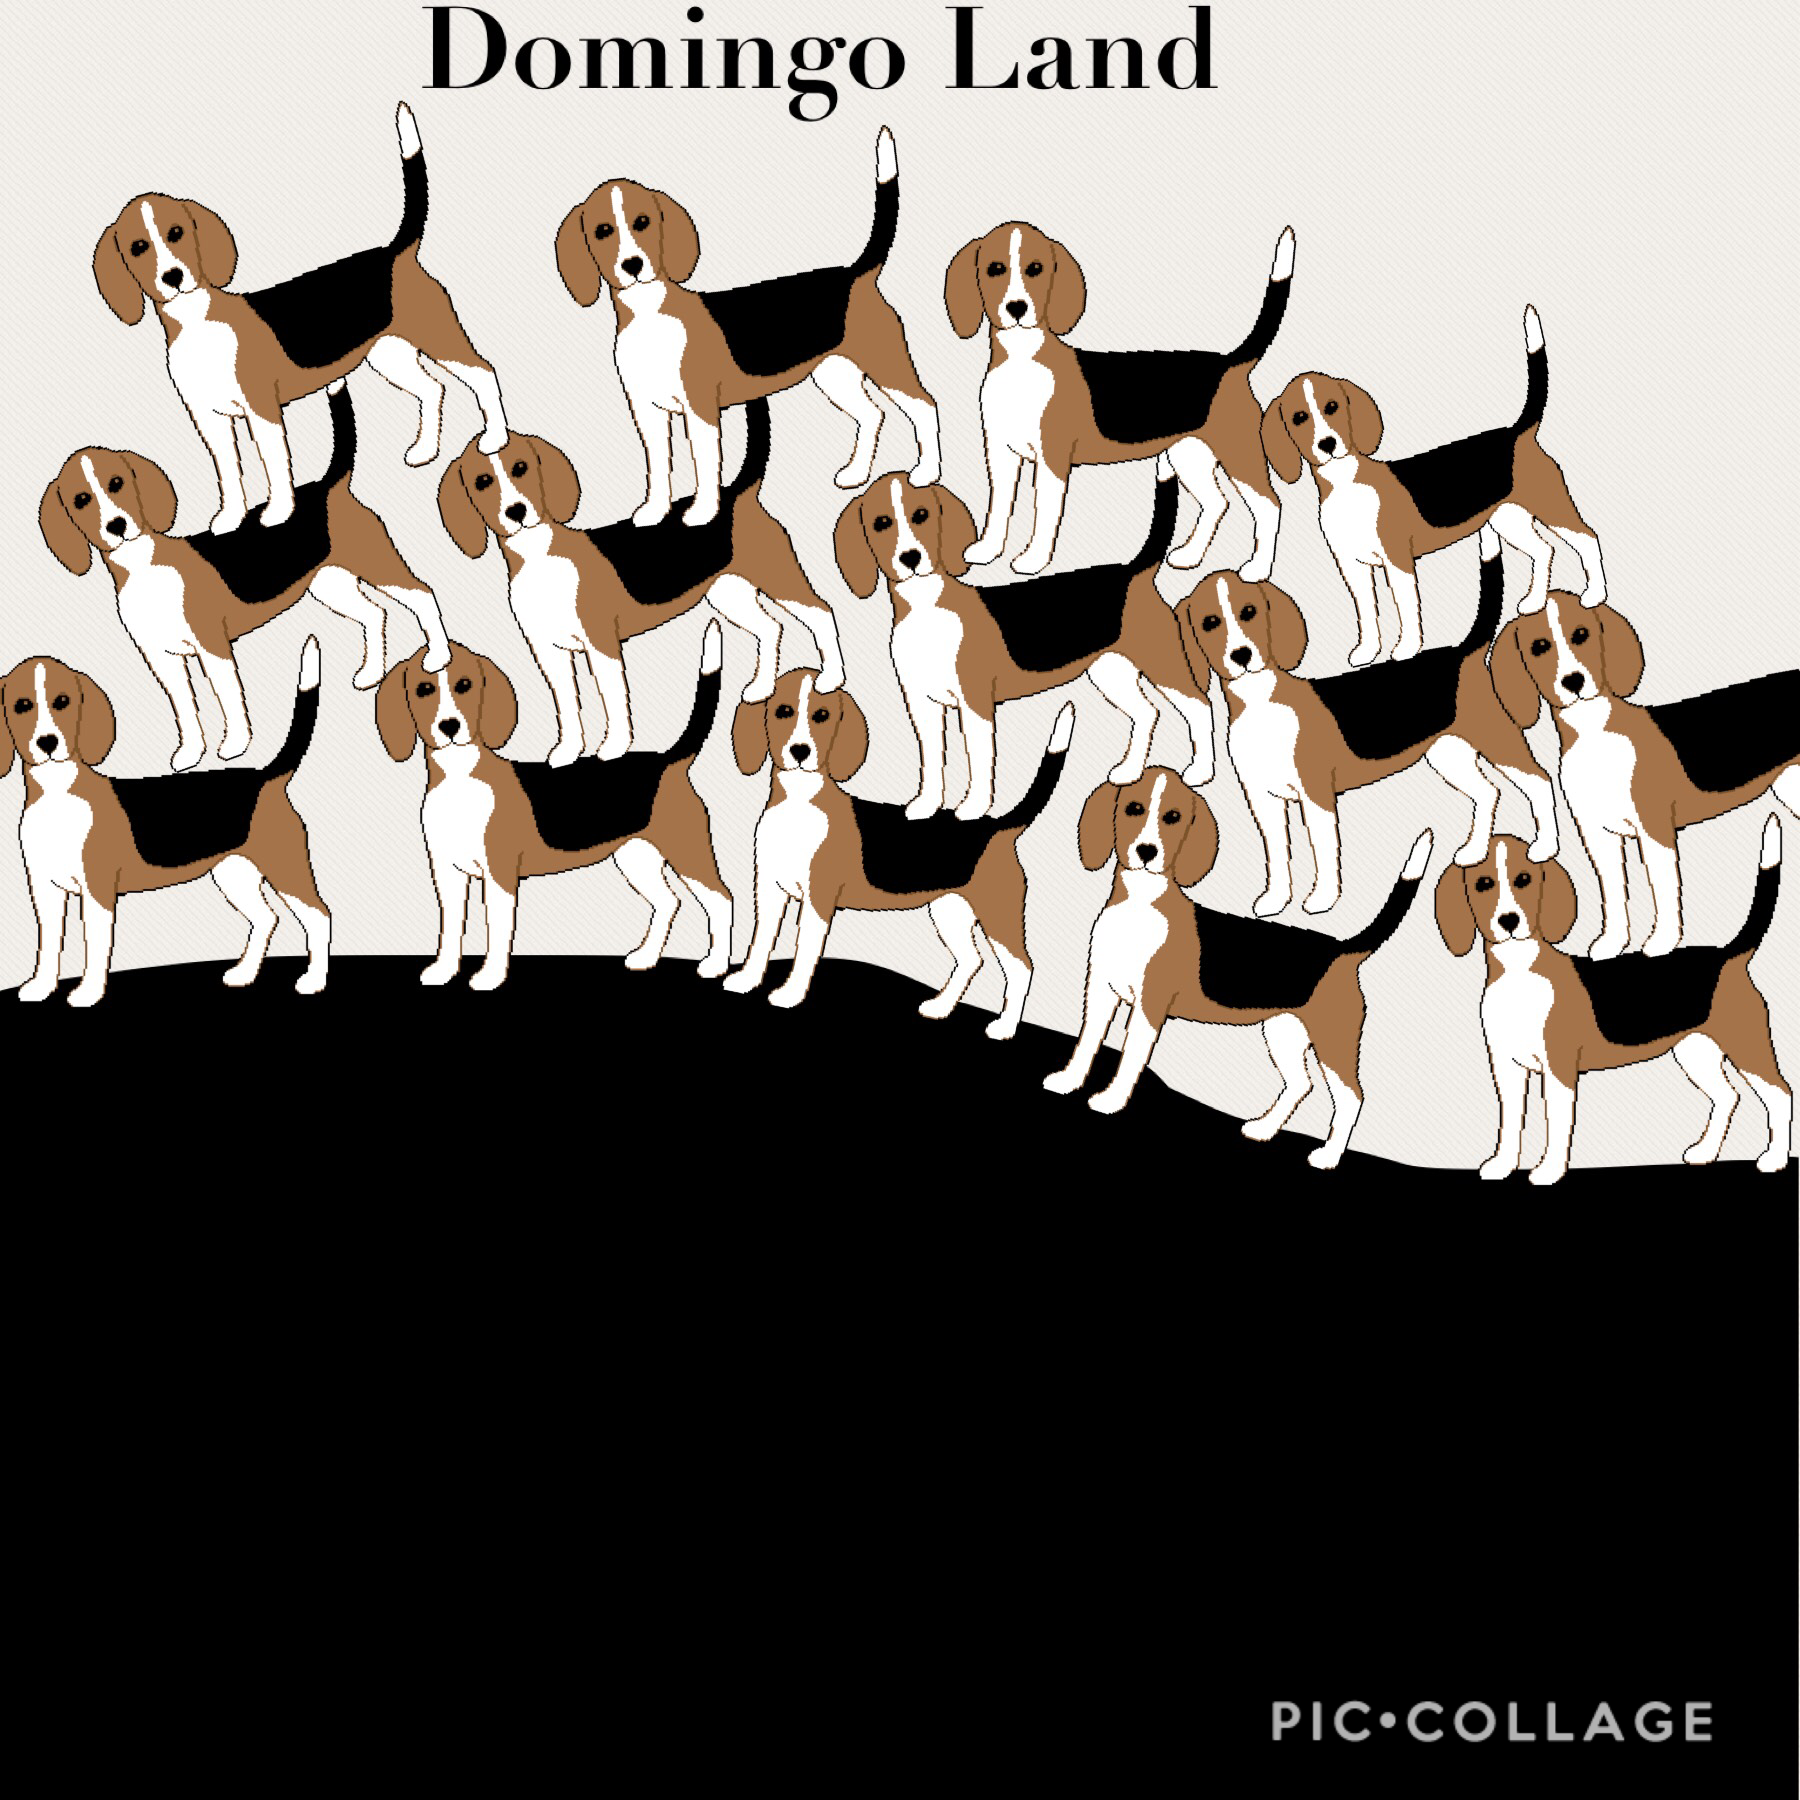 Hey guys! Welcome to Domingo land! More coming soon!